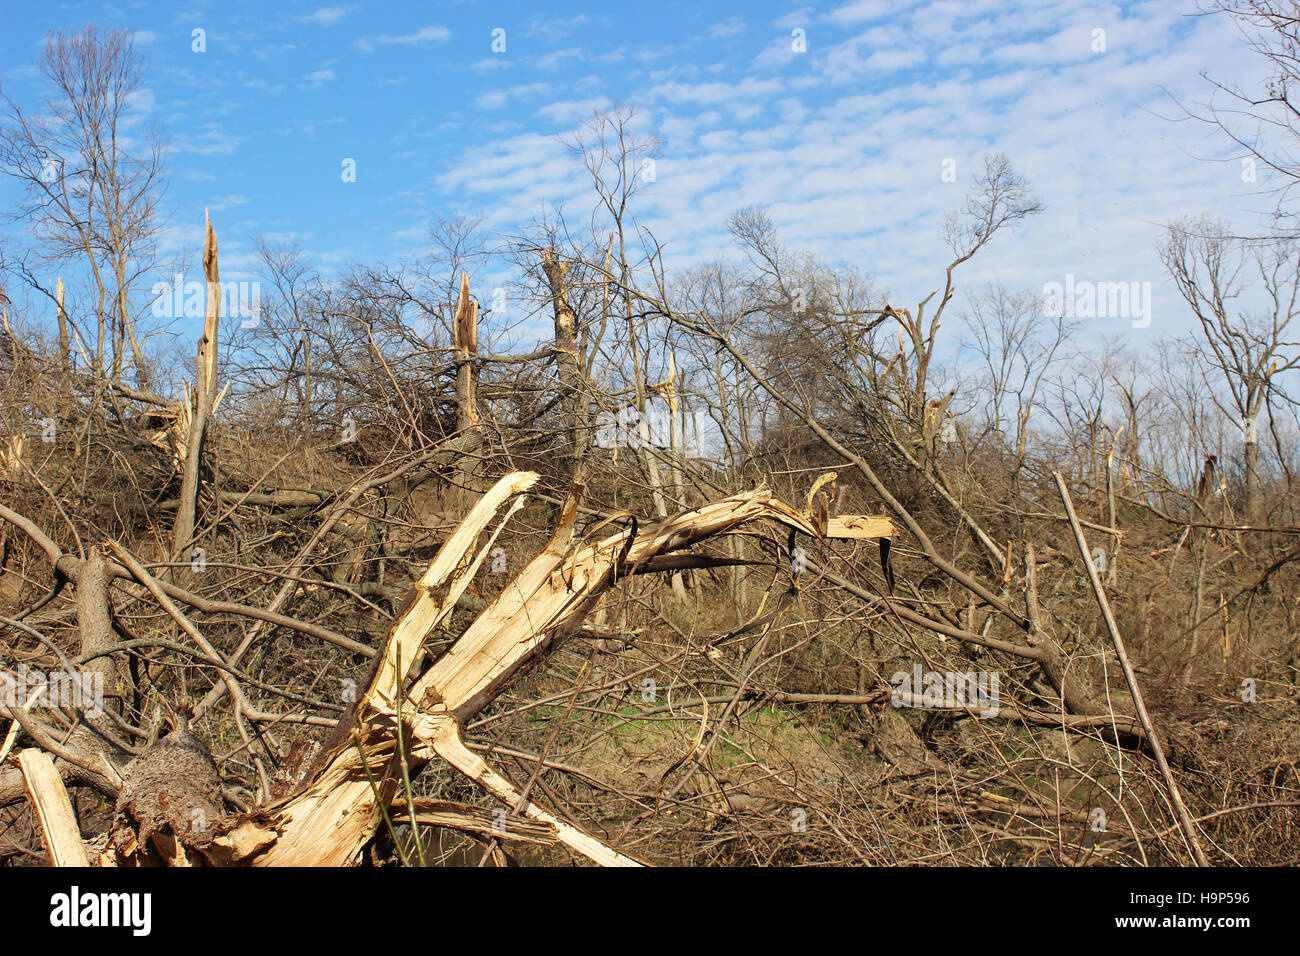 A wooded area decimated by a tornado in Illinois - Stock Image